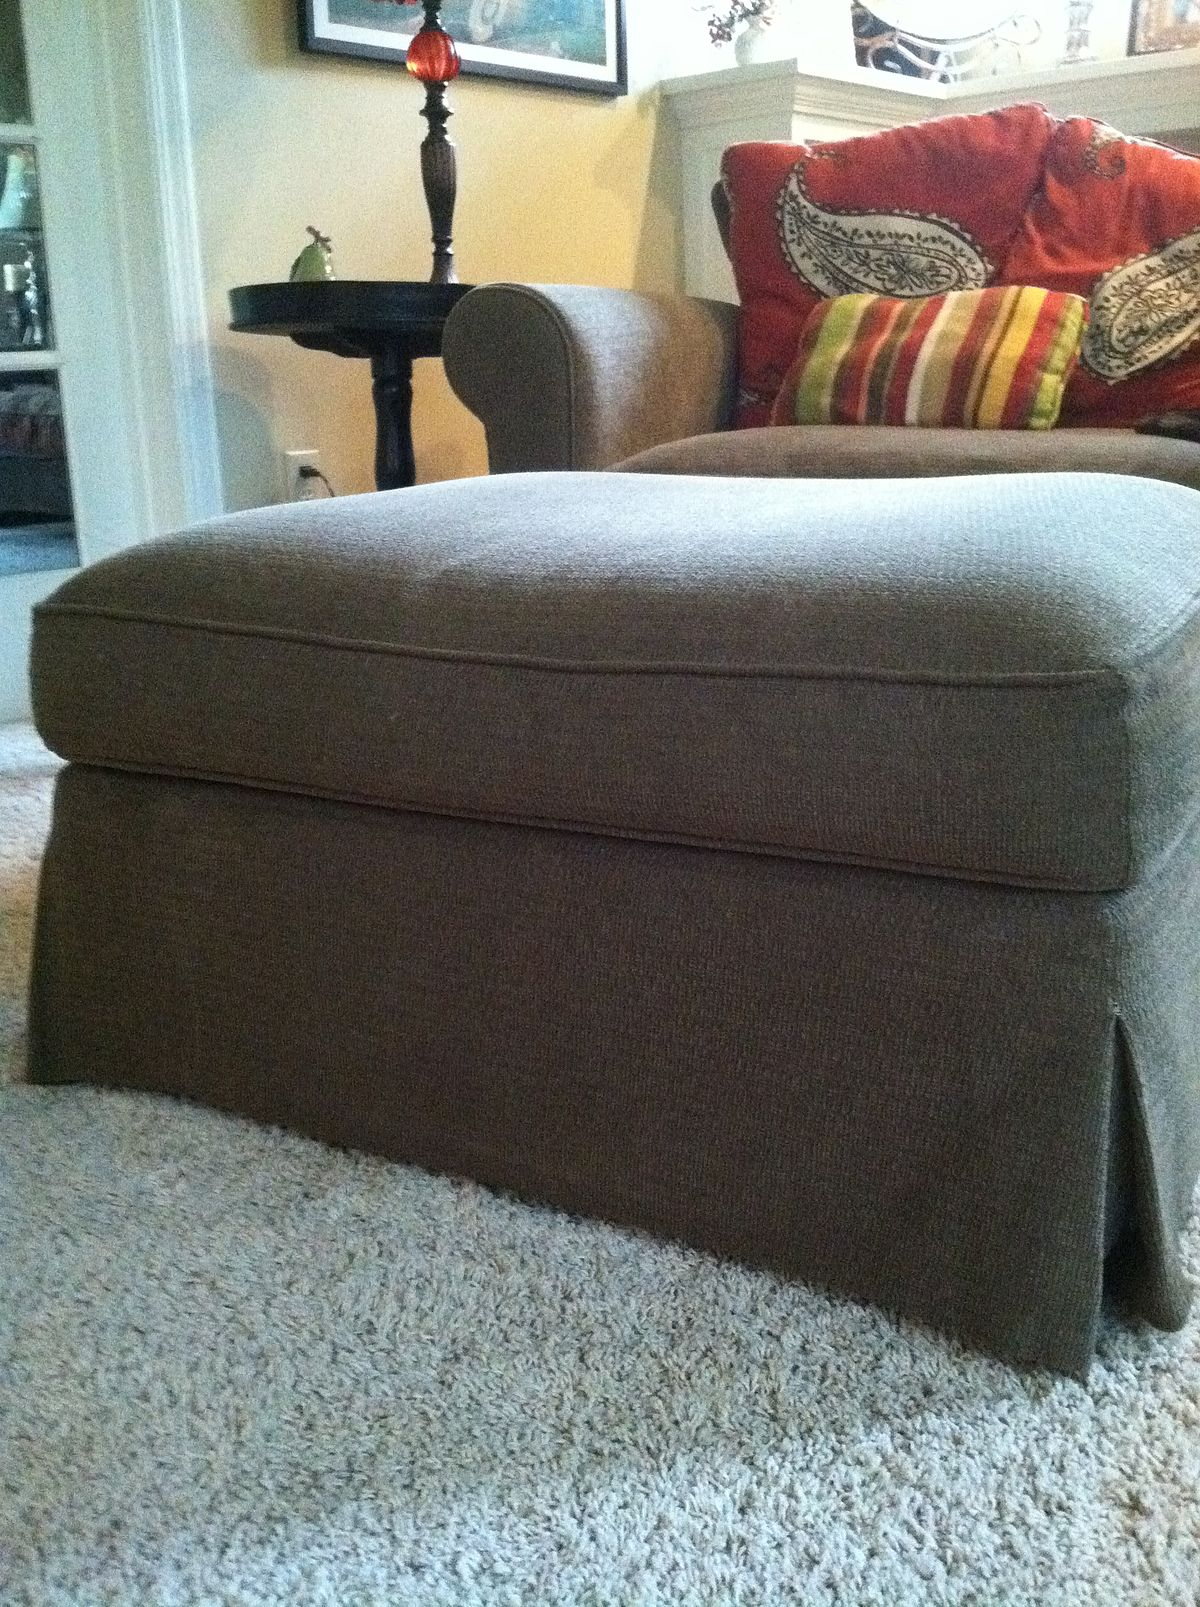 footstool living room ottoman furniture 10684